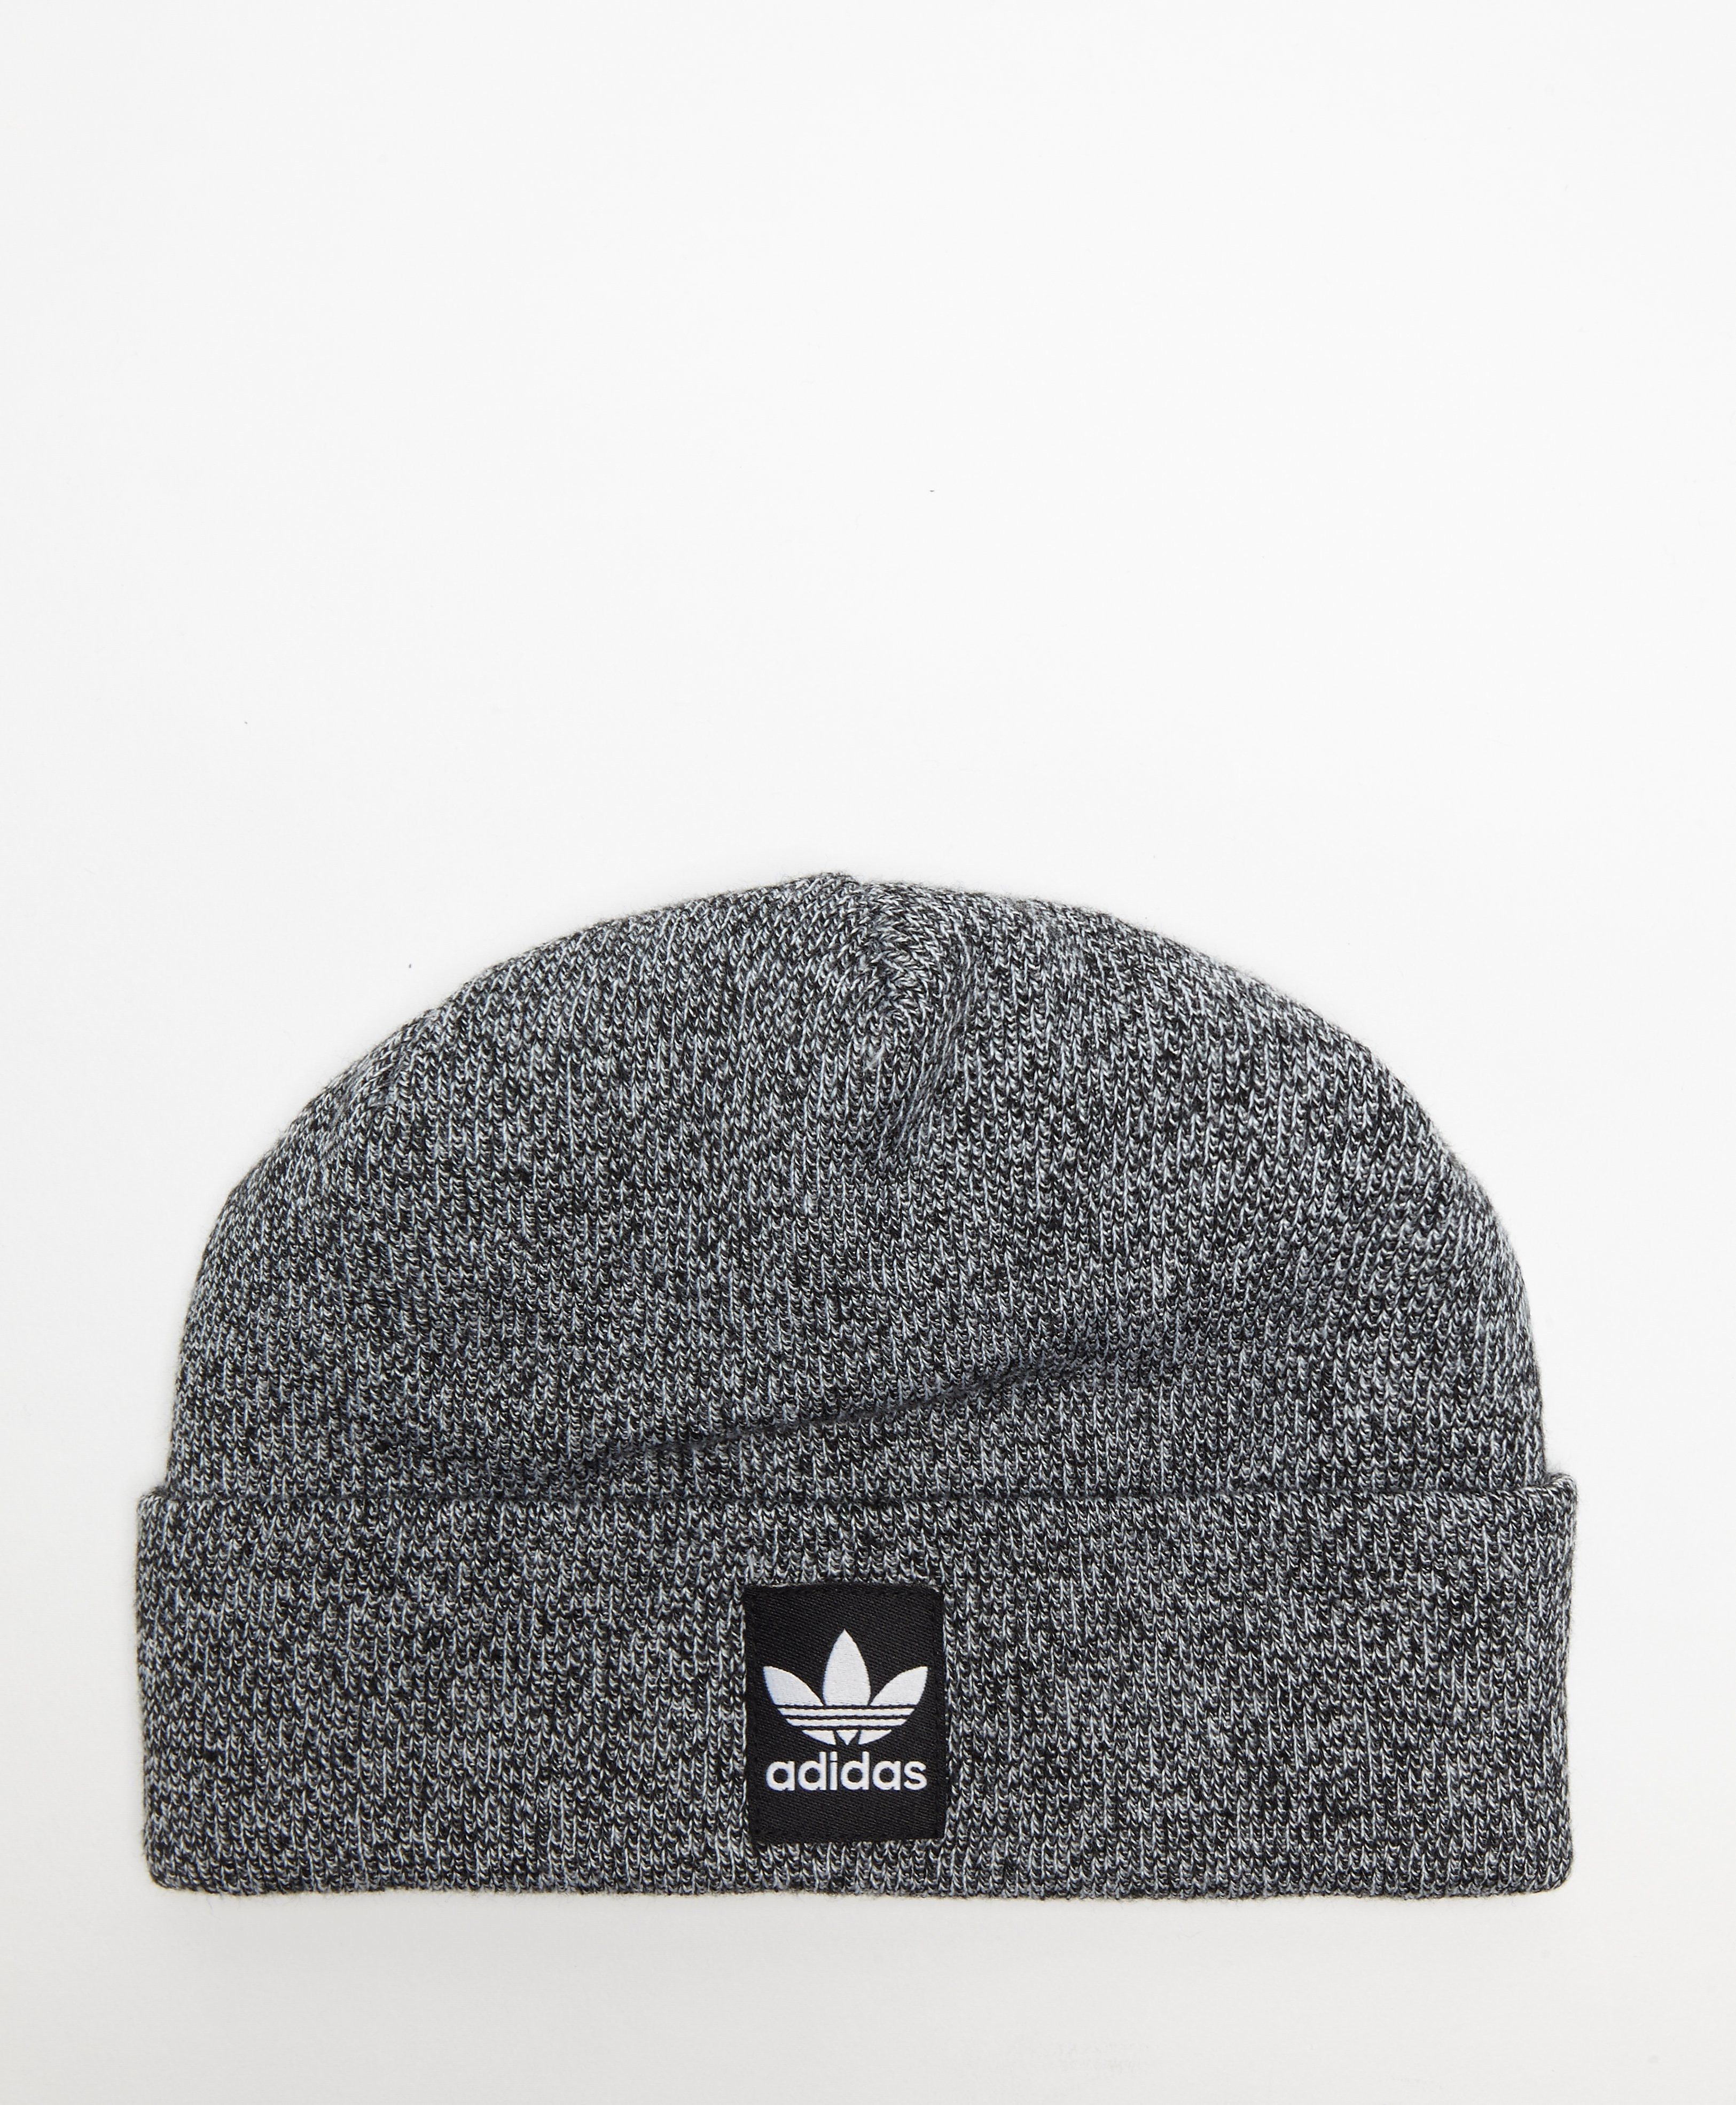 adidas Originals Ribbed Logo Beanie